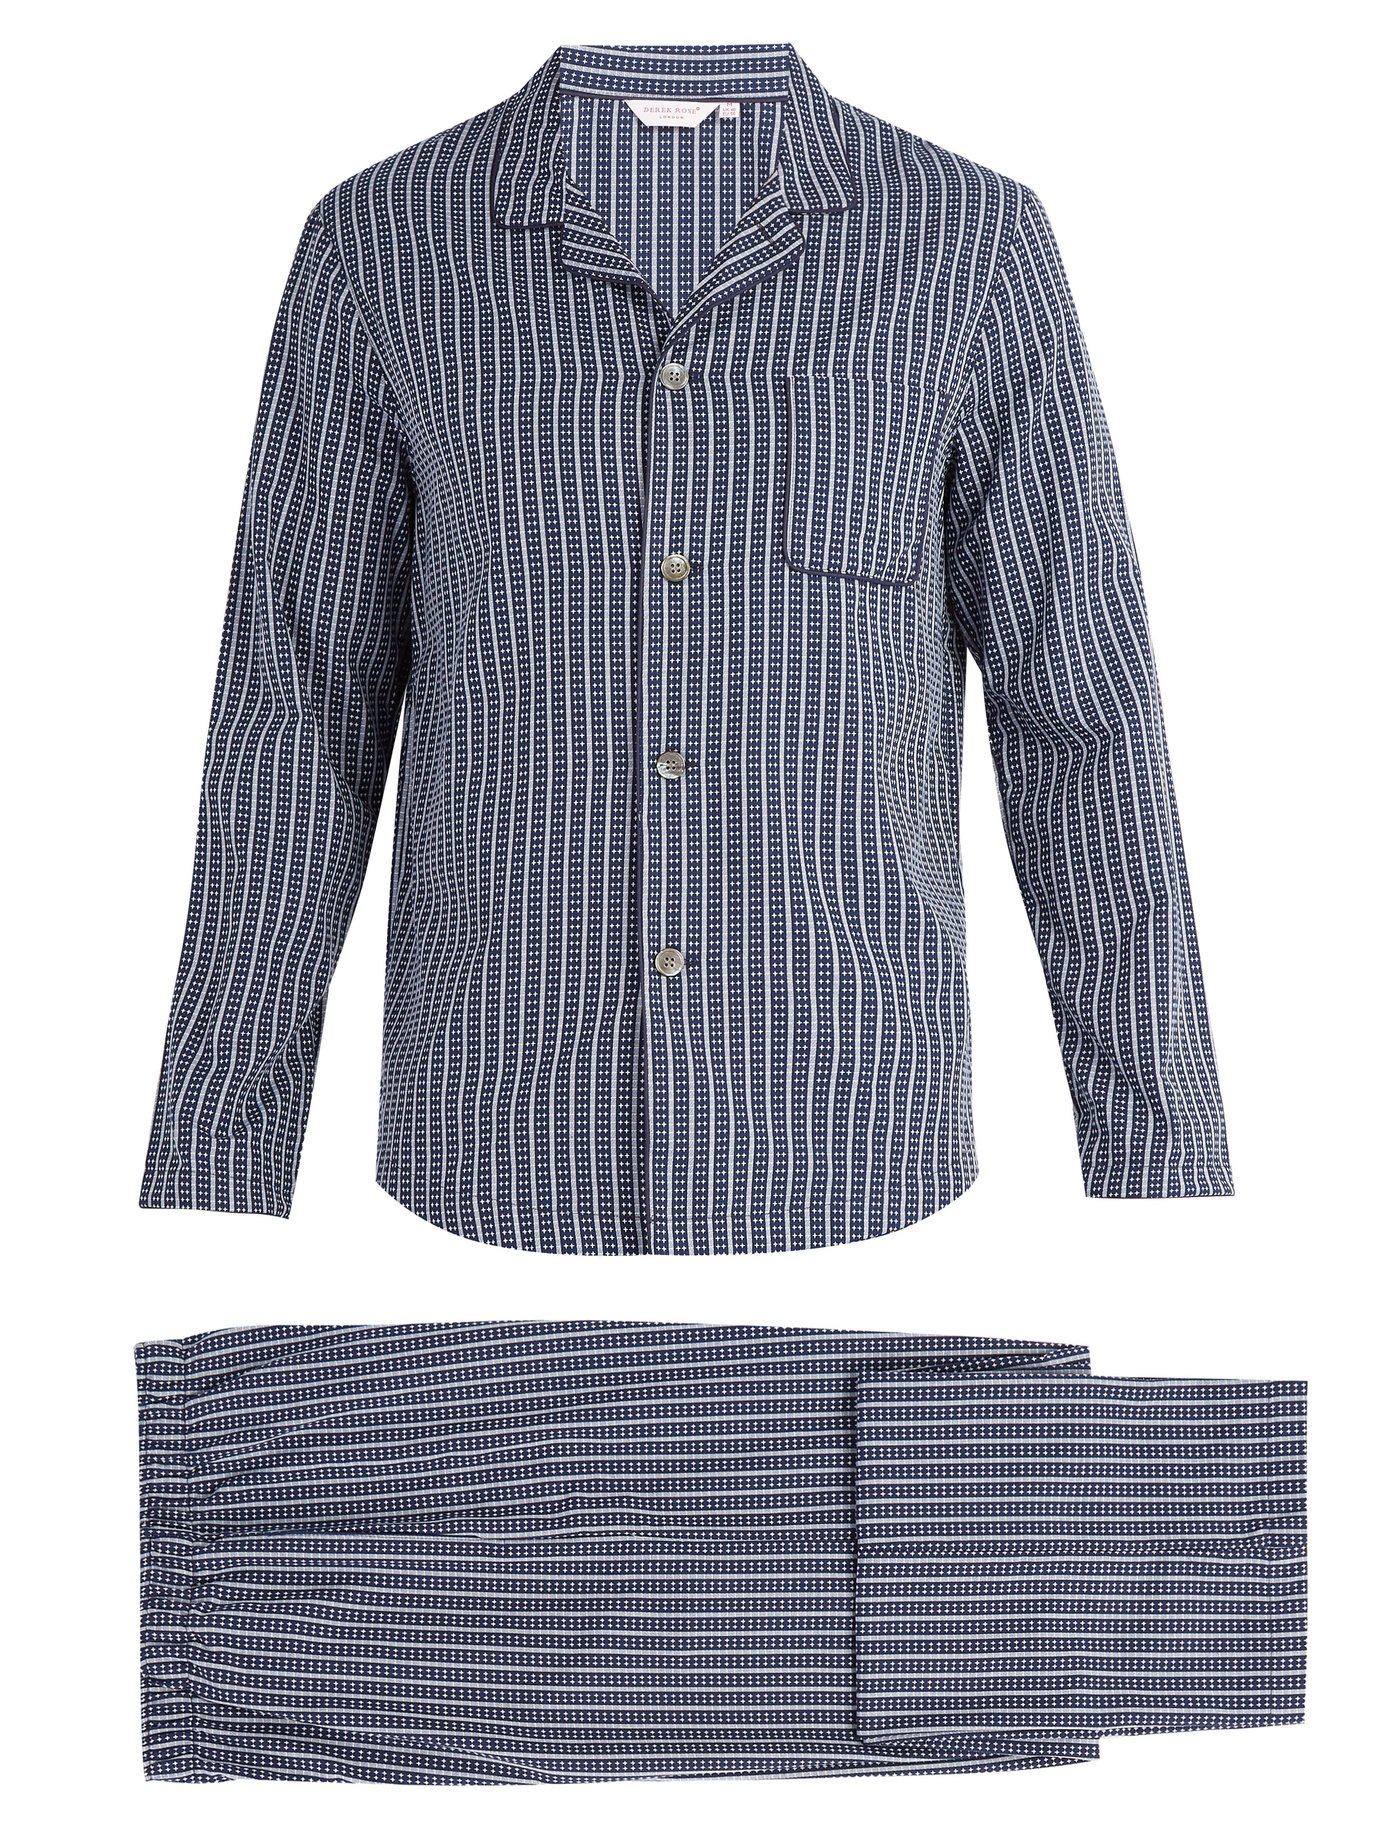 Pijama set£210 - DEREK ROSE Royal stripe and cross print cotton pyjama setWho doesn't like a Luxurious PJ set? This navy and white royal stripe and white cross print pyjama set is crafted from cotton poplin for a lightweight feel and cut to a relaxed shape. Buy it here